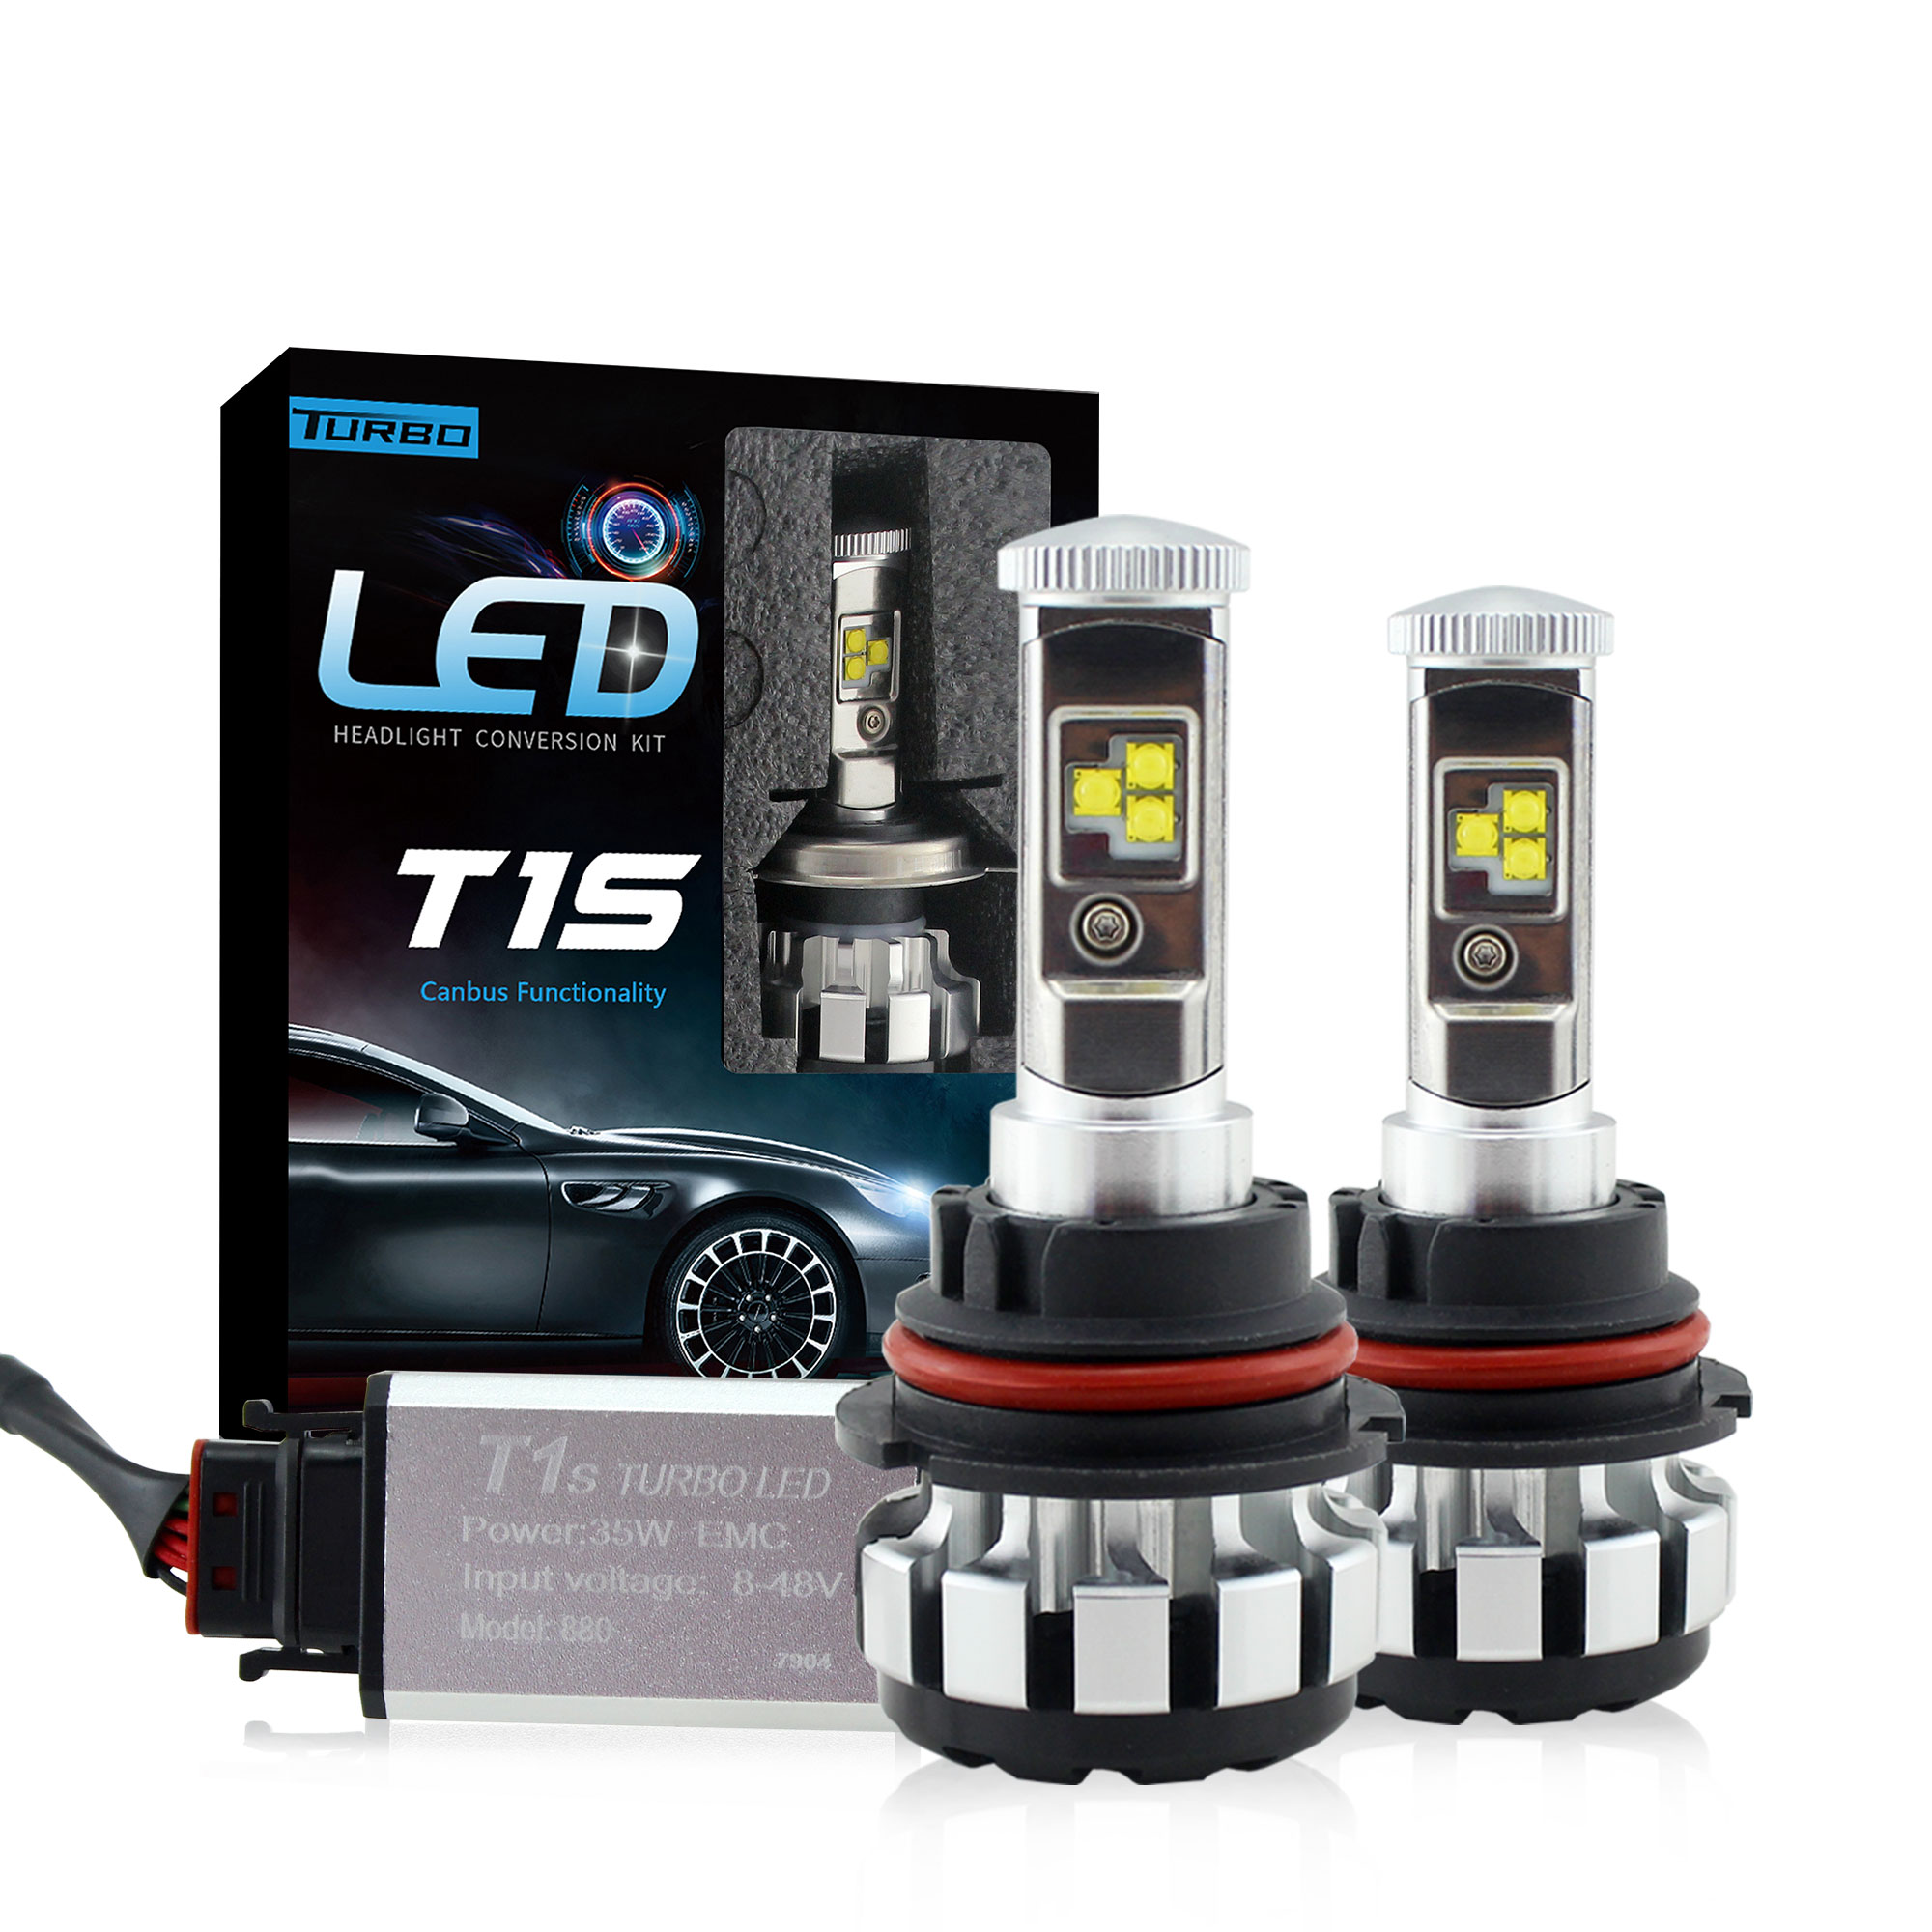 Raych Lighting 8000 Lumen H11 T1S LED Headlights Bulbs Fog Lights Extremely Super Bright Conversion <strong>Kits</strong> Replacement for Car